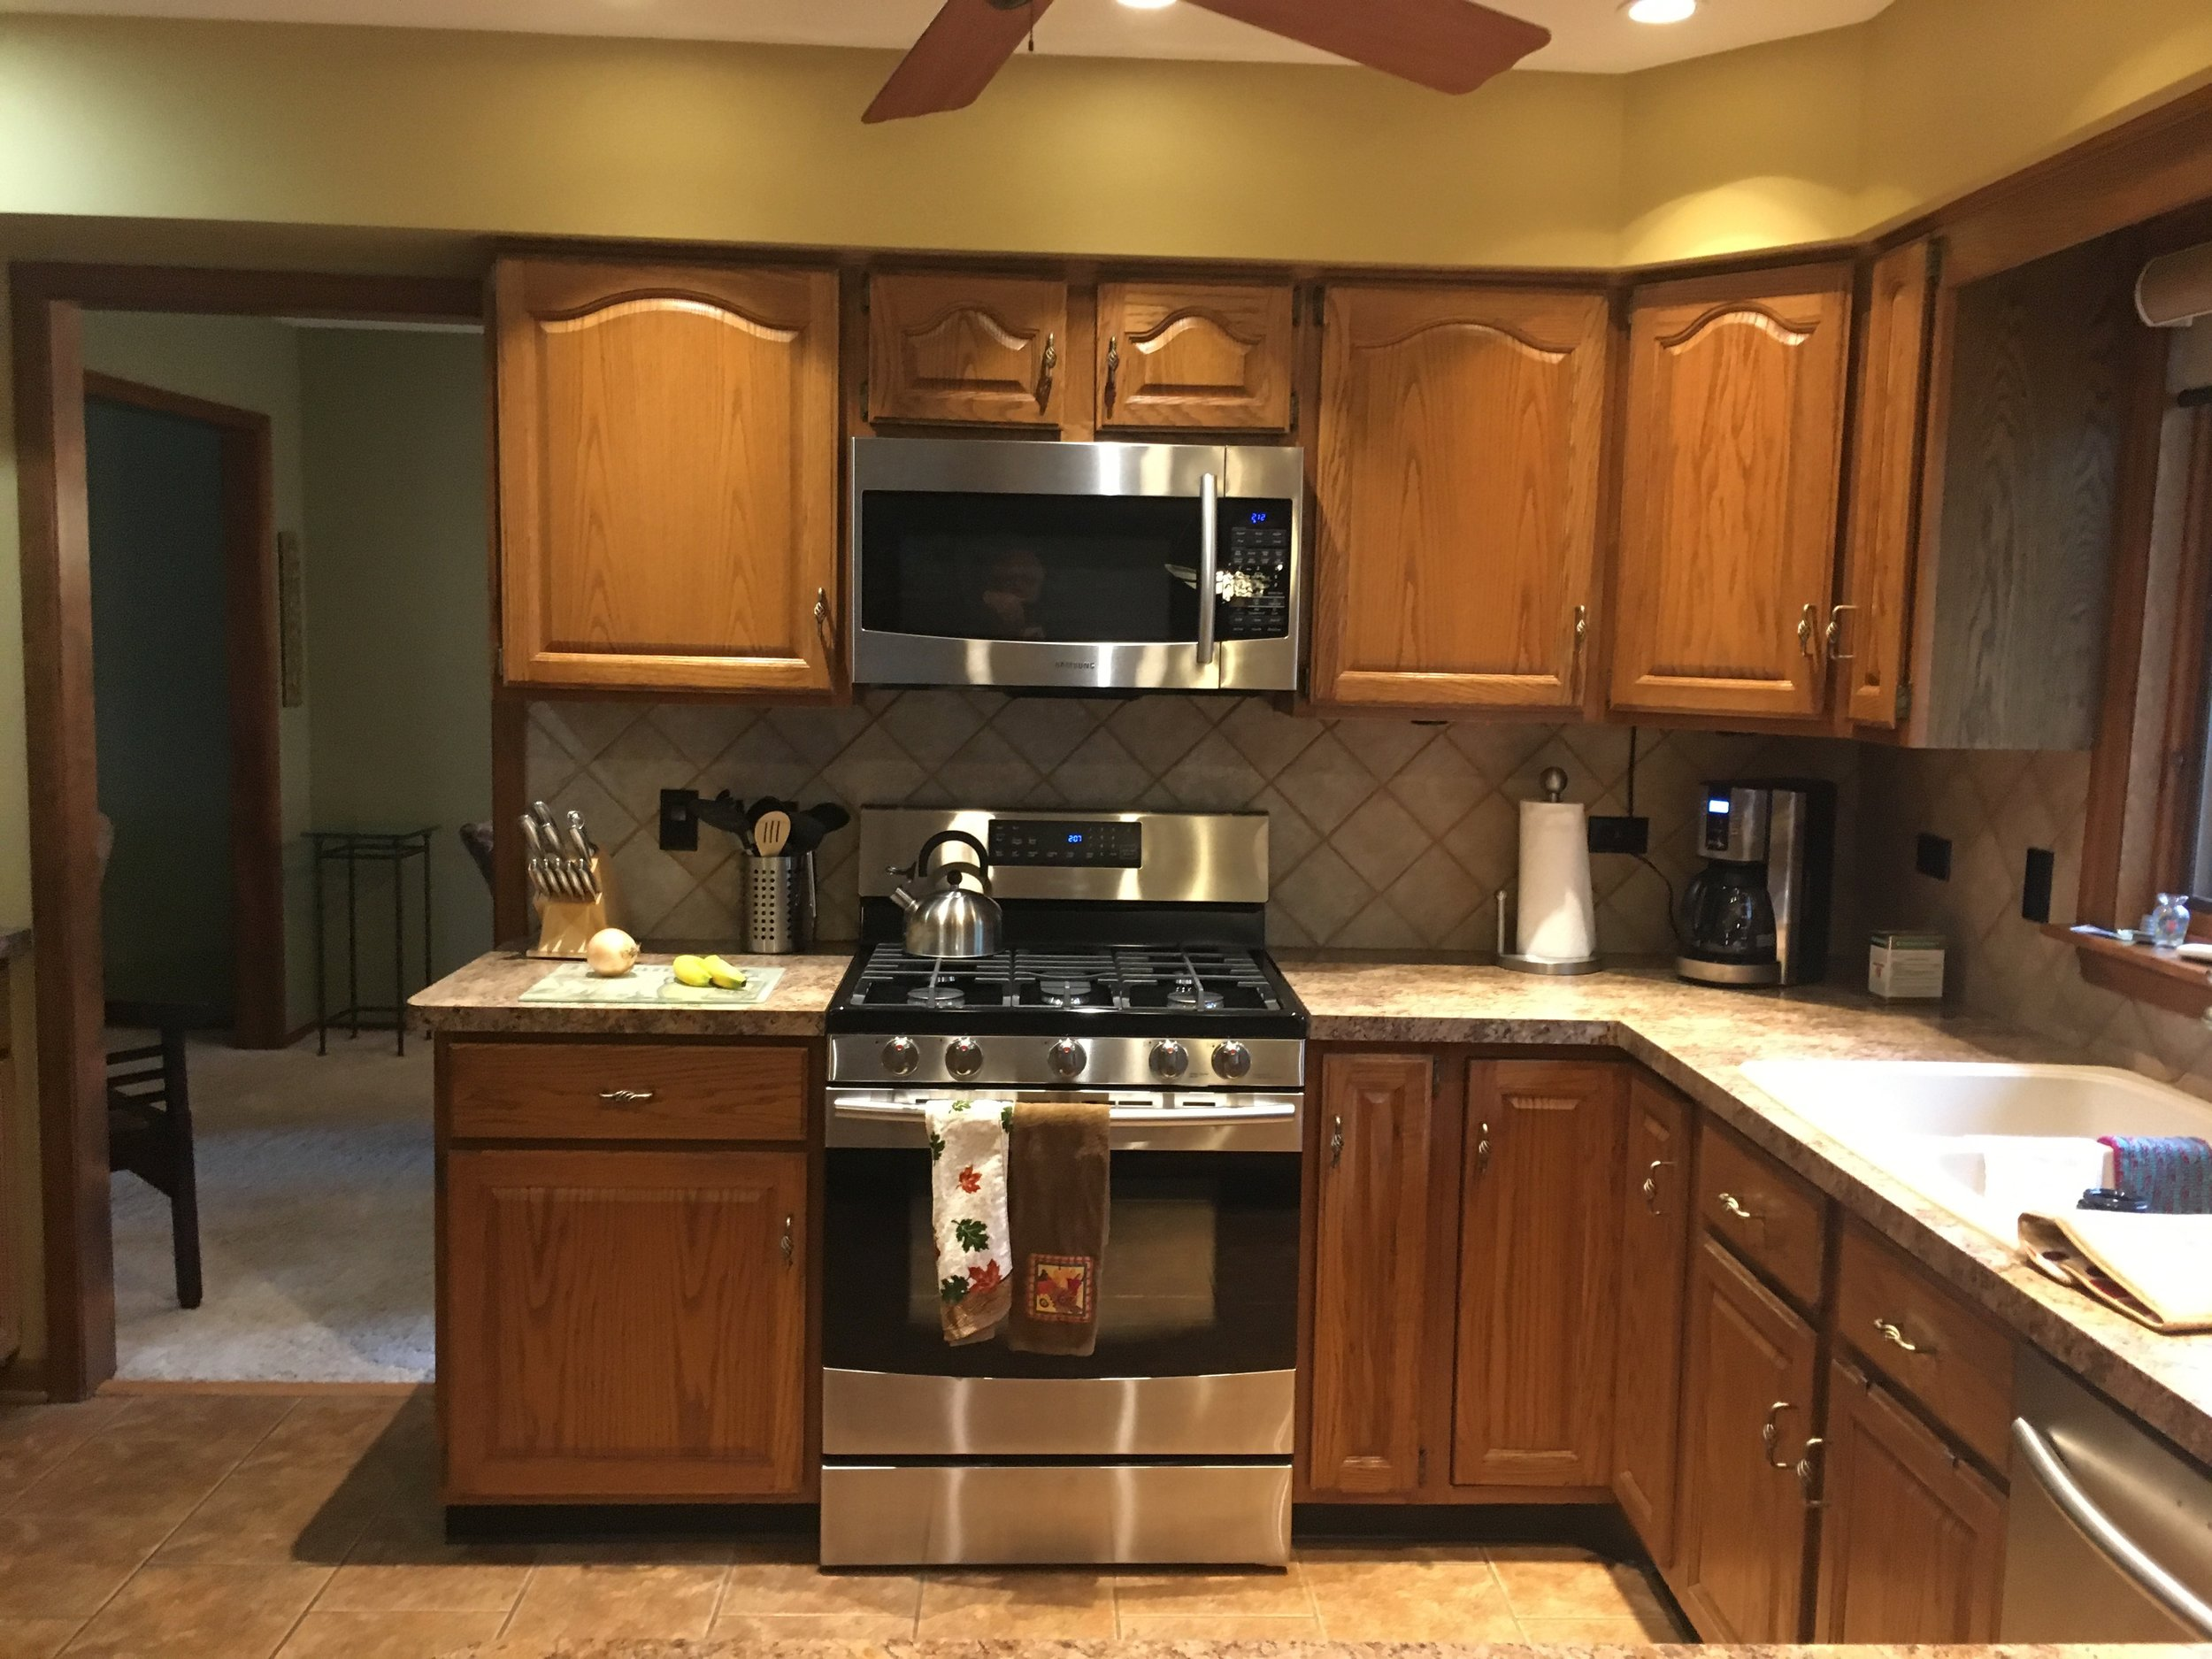 BEFORE PHOTO OF NAPERVILLE ILLINOIS KITCHEN REMODEL WITH HONEY OAK CABINETS FROM 1988